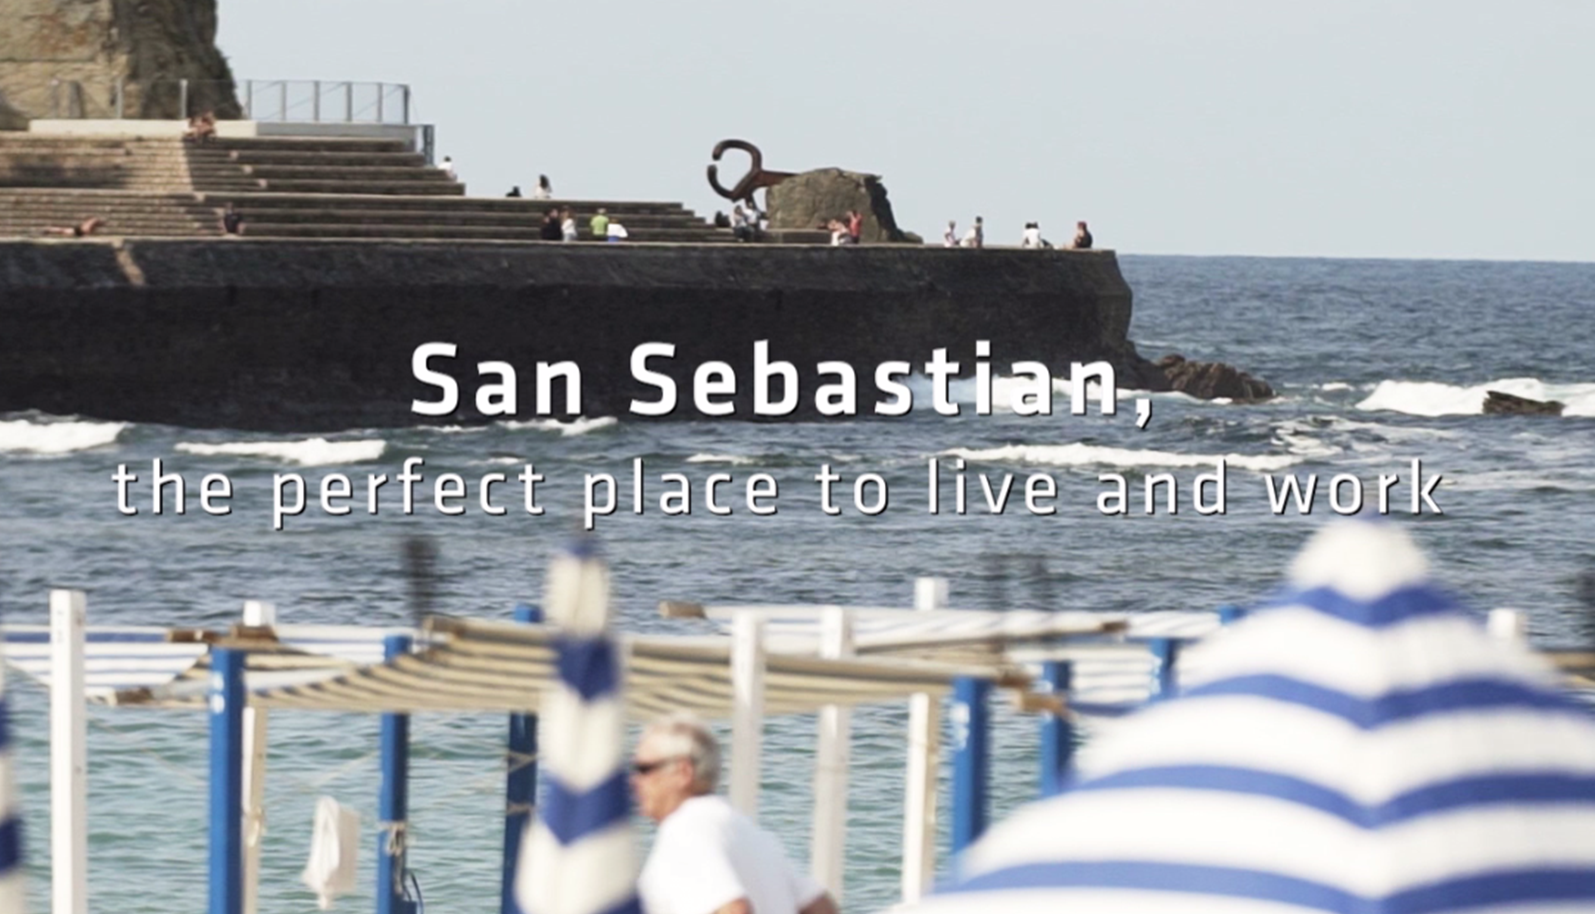 San Sebastian video 2018 thumbnail